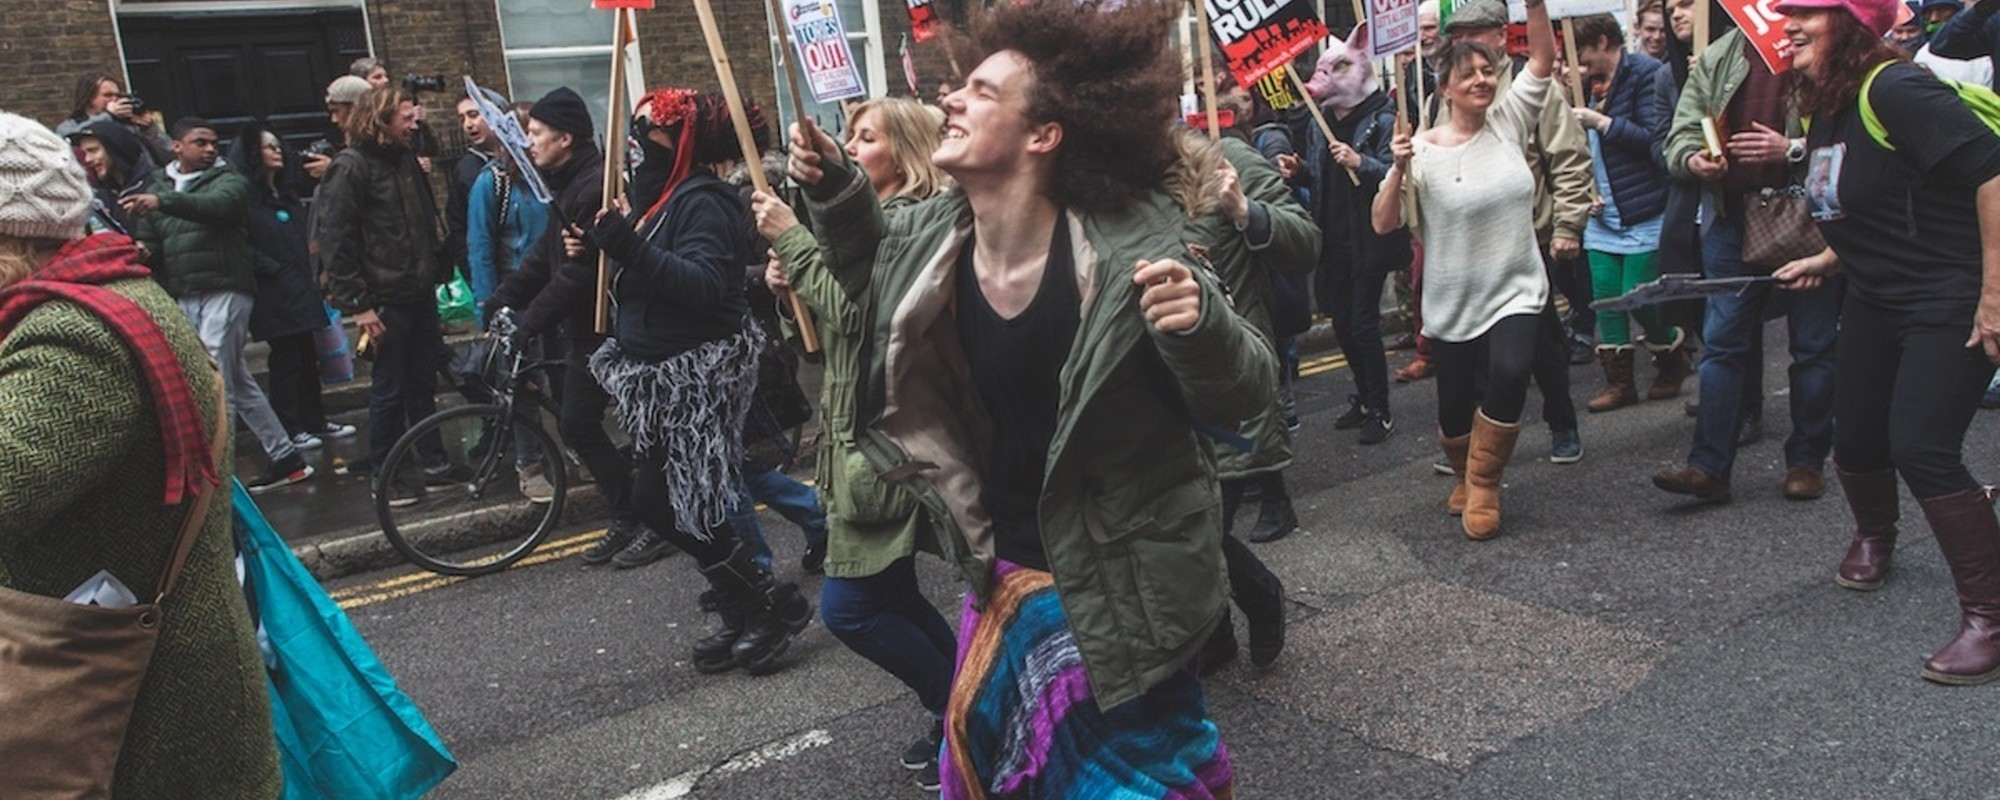 'Fuck Financial Terrorists': Photos from London's Fiery Anti-Austerity March